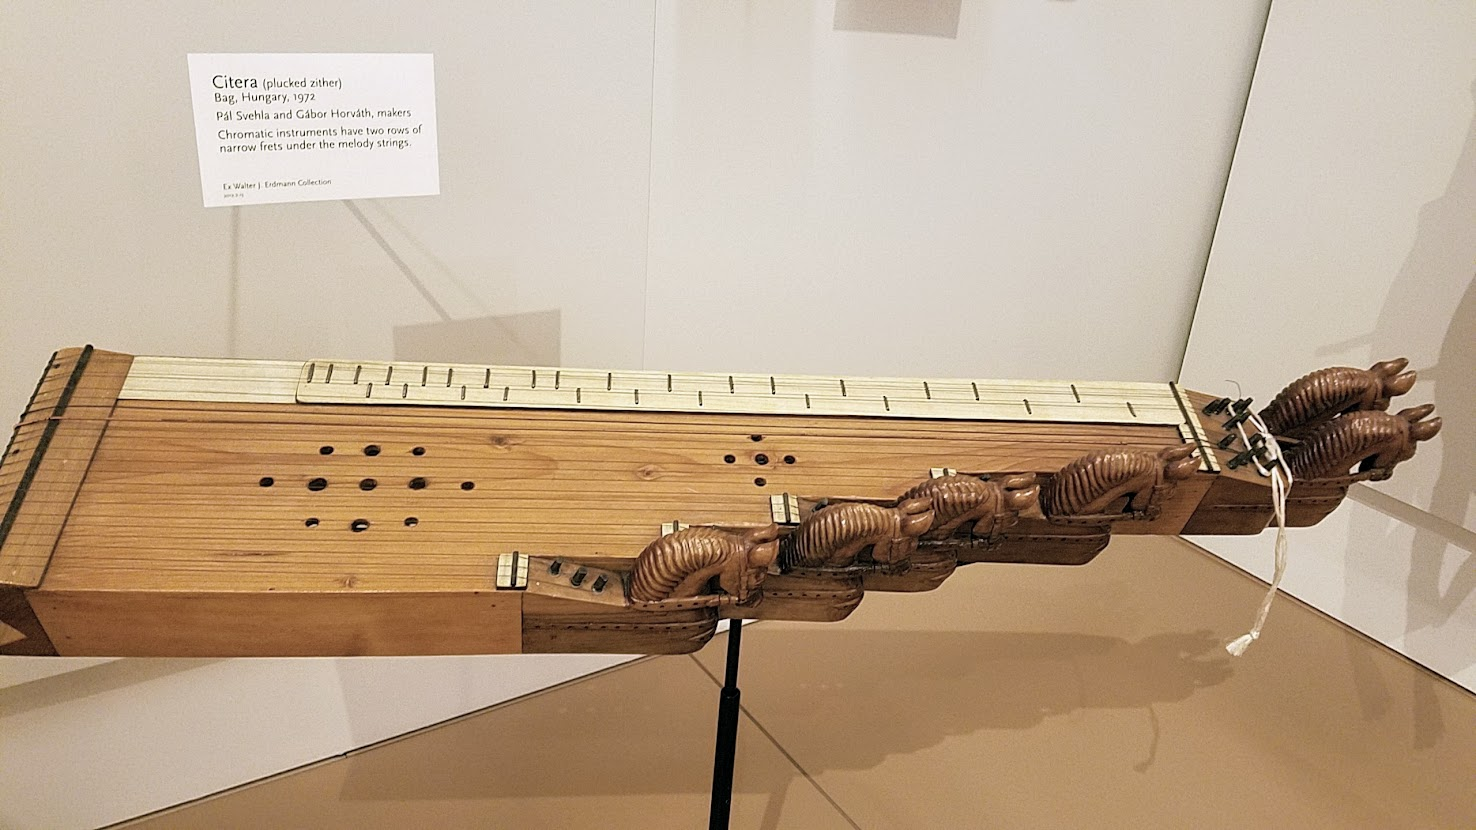 Music Instrument Museum (MIM) Geographic galleries, Citera (plucked zither) from Hungary